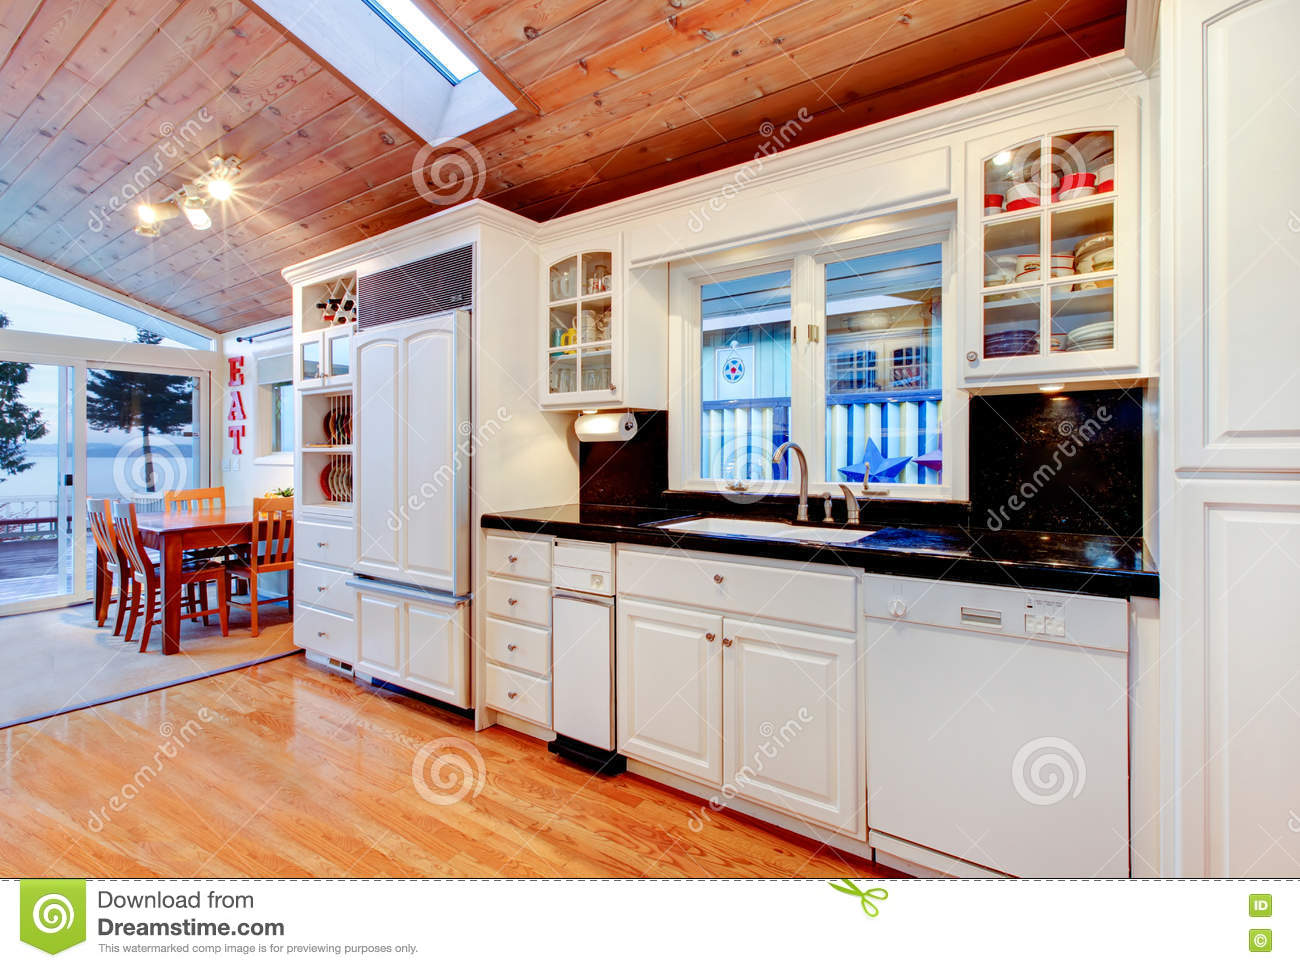 White Kitchen Cabinets With Black Counter Tops In Luxury